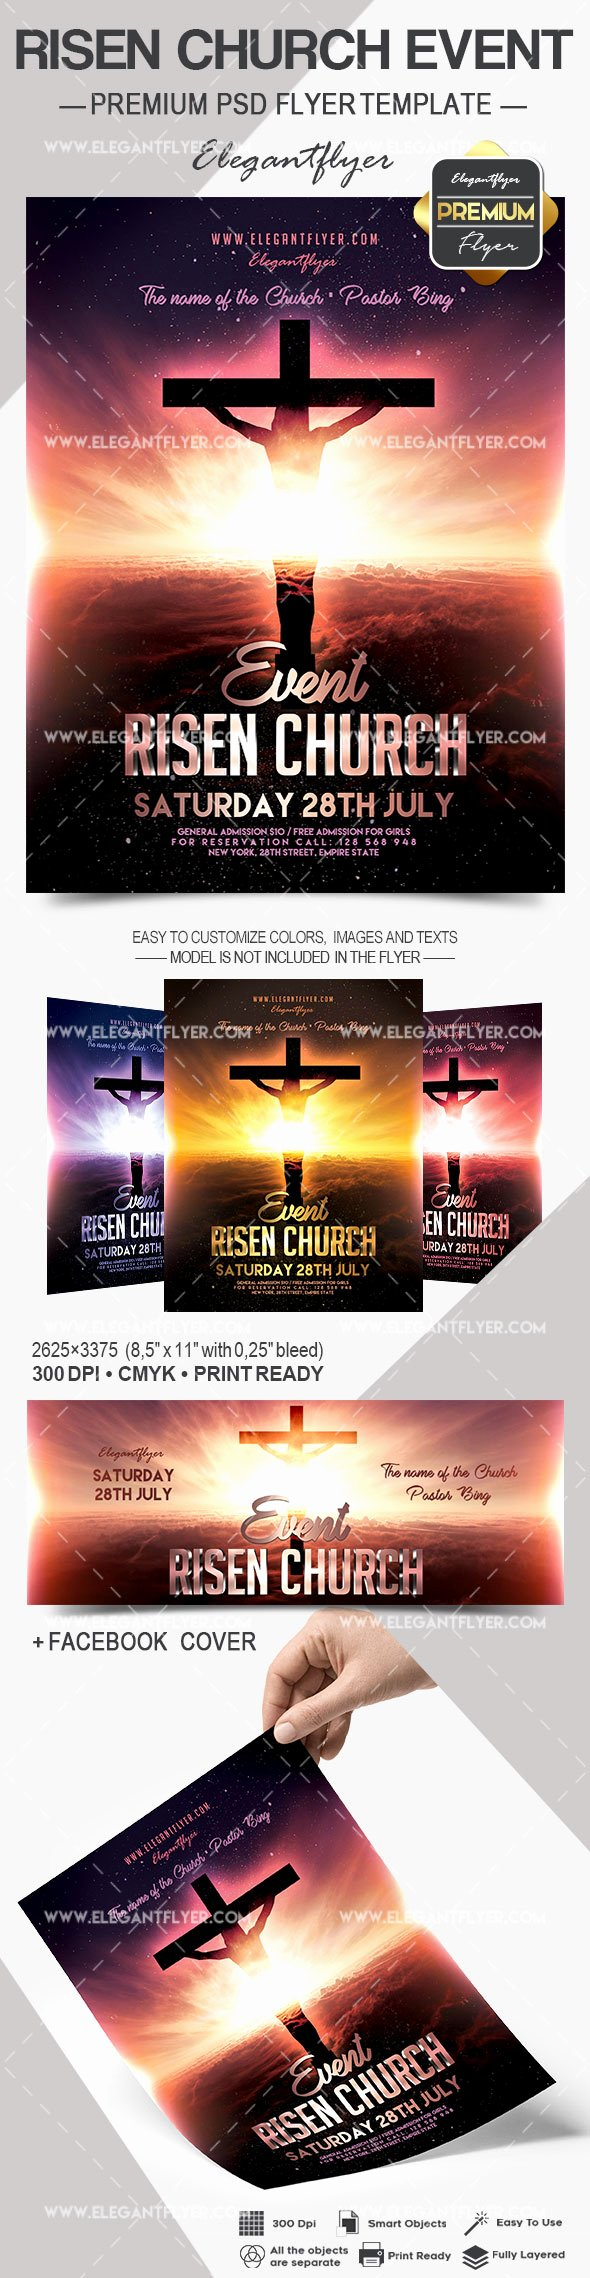 Free Church Flyer Templates Psd Best Of Risen Church event – Flyer Psd Template – by Elegantflyer